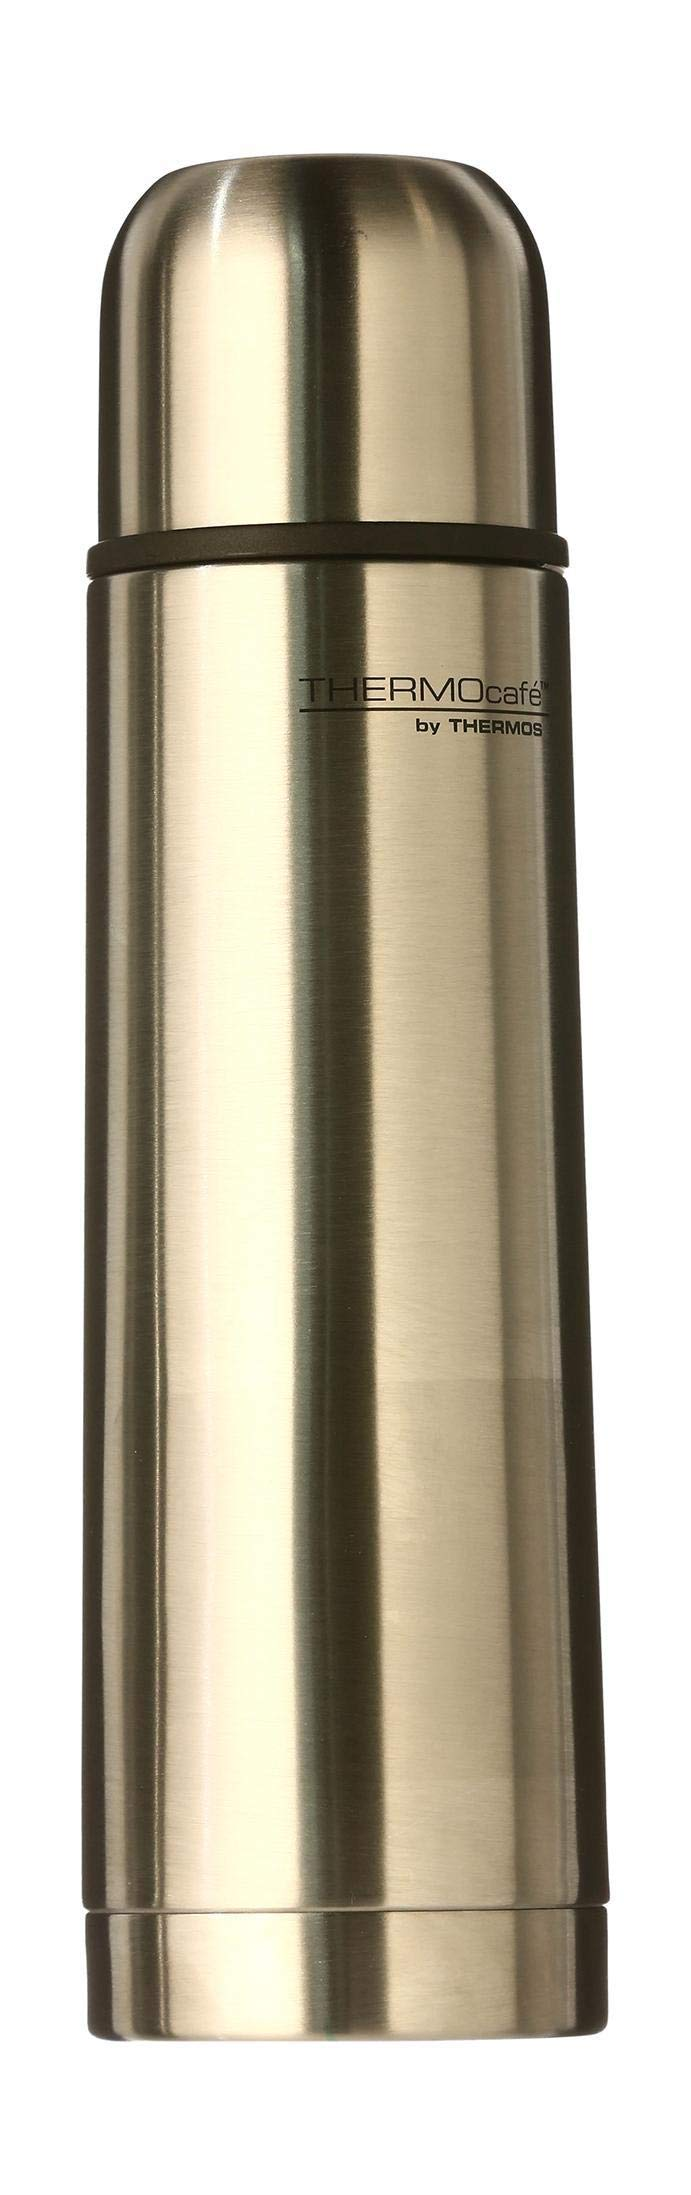 ThermoCaf-Stainless-Steel-Flask-10-L